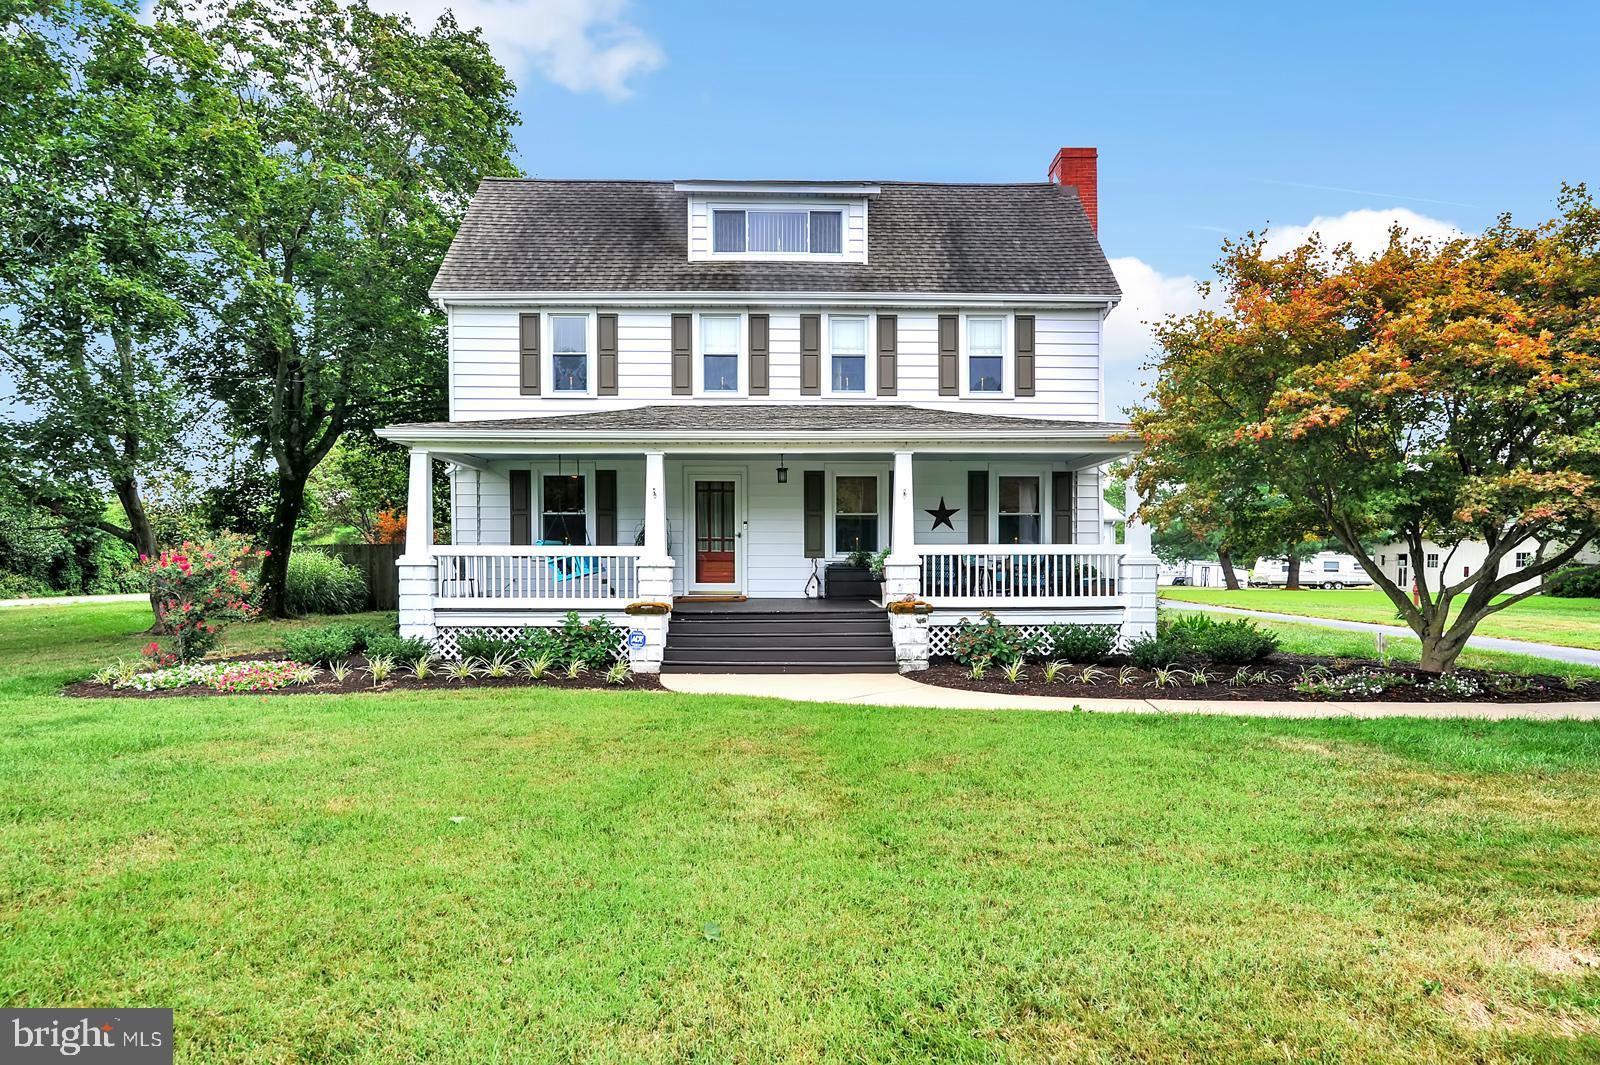 JUST REDUCED!! This beautiful American foursquare historic home is the absolute picture of perfection. The utmost care has been taken with this home, and pride of ownership shines throughout.  Step up onto the gorgeous 35' x 9' front porch and imagine mornings gazing out across the fields, or evenings rocking away, admiring the newly landscaped lawn.  Upon entry, you'll be greeted with recently updated carpets, beautiful historic colors throughout, and original trim, all specially restored and replaced to its original location. The living room, complete with original fireplace, boasts original hardwood flooring, sanded and refinished for a brand new look, and original french doors leading into the formal dining area. The gourmet kitchen, renovated just a few years ago, boasts hard-surface countertops, custom backsplash, newer appliances, and a peninsula with an informal seating area for all of your entertainment needs. The original canning kitchen allows for even more seating area, should it be needed, plus has been renovated into a main floor laundry area complete with built in utility closet/storage cabinets. Rounding out the main floor is the first of four bedrooms, currently being used as an office, which connects to the main floor, fully renovated bathroom, but would make an ideal bedroom for anyone in need of first floor living! Upstairs, you will find three overly spacious bedrooms, including the master connecting to the sewing room, which provides accessibility to the partially finished attic space, and another fully renovated bath with amazing custom-tile shower, modern flooring, custom wood vanity with solid surface countertop and dedicated makeup area, built-in wooden linen closet, and two skylights (crank opening!) to provide all of the natural lighting and air you could desire! Should you be in need of storage, there is a full, dry basement in addition to the attic space that was once used as living space, plus not one, but TWO outbuildings! The first, 